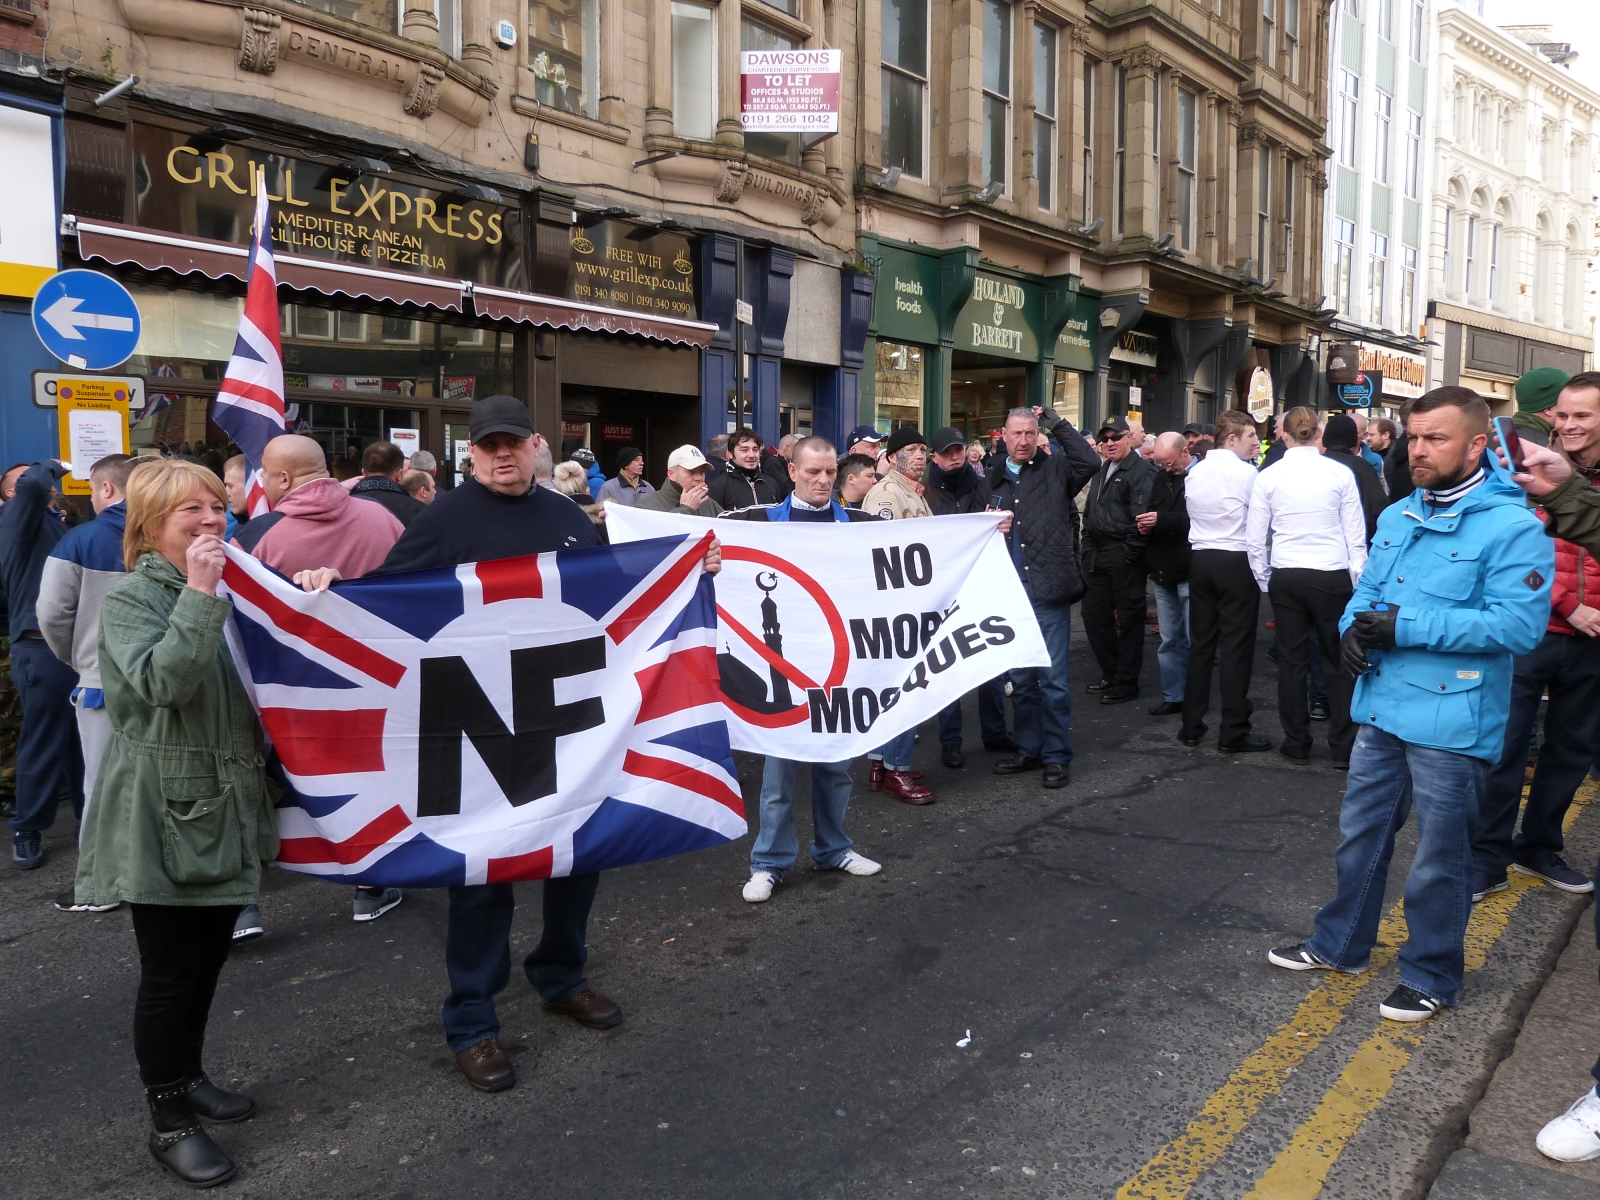 Neo Nazis Met With Strong Local Resistance During Wigan March